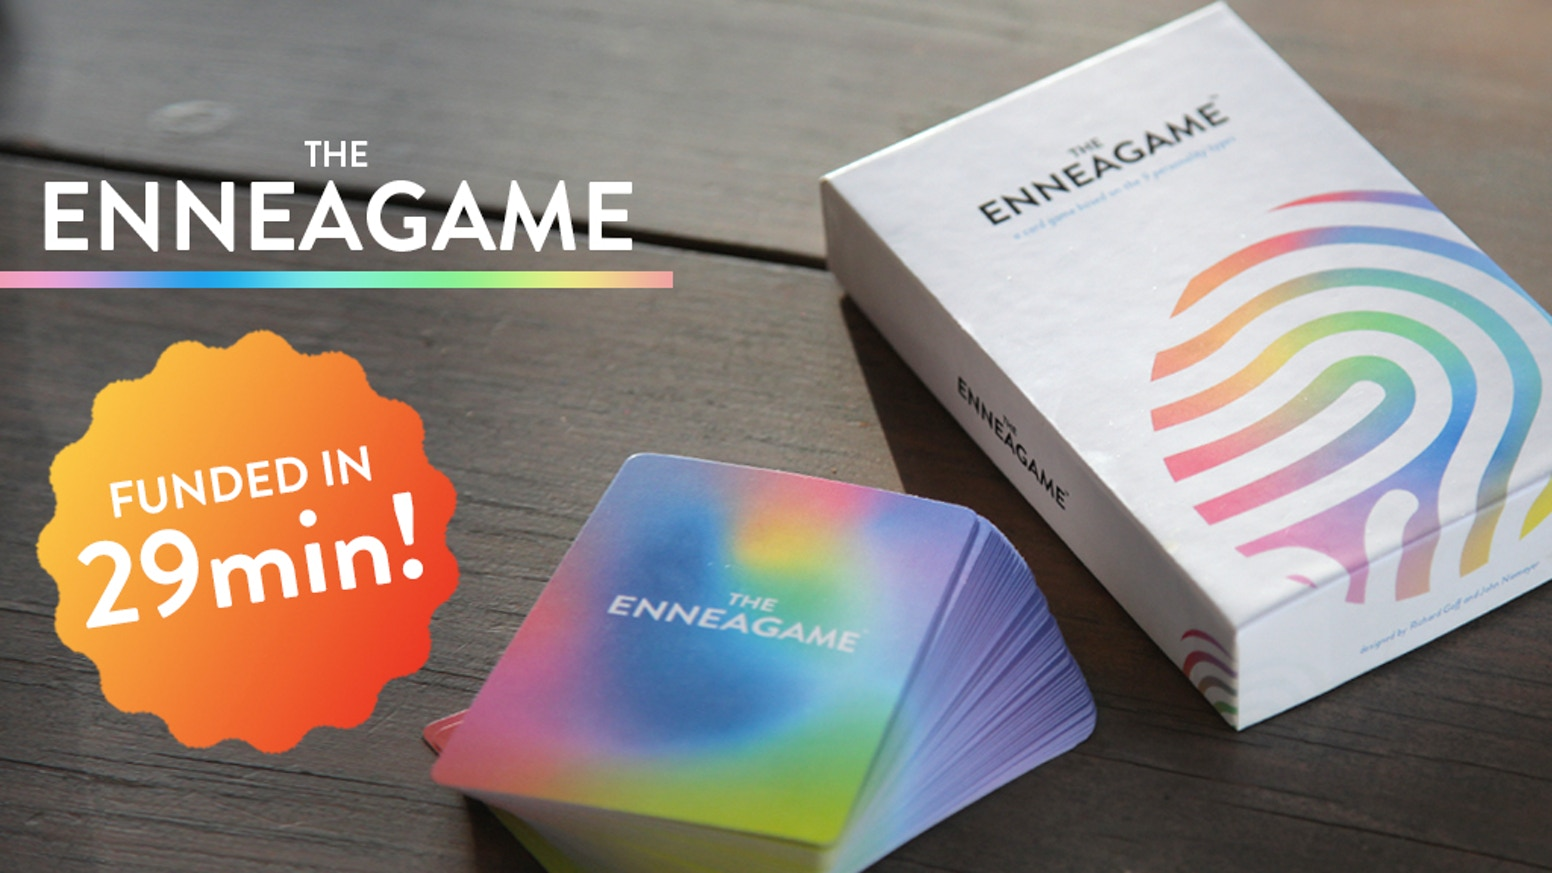 Introducing the world's first game based on the 9 fundamental personality types of the Enneagram. Created by two 7s (duh)